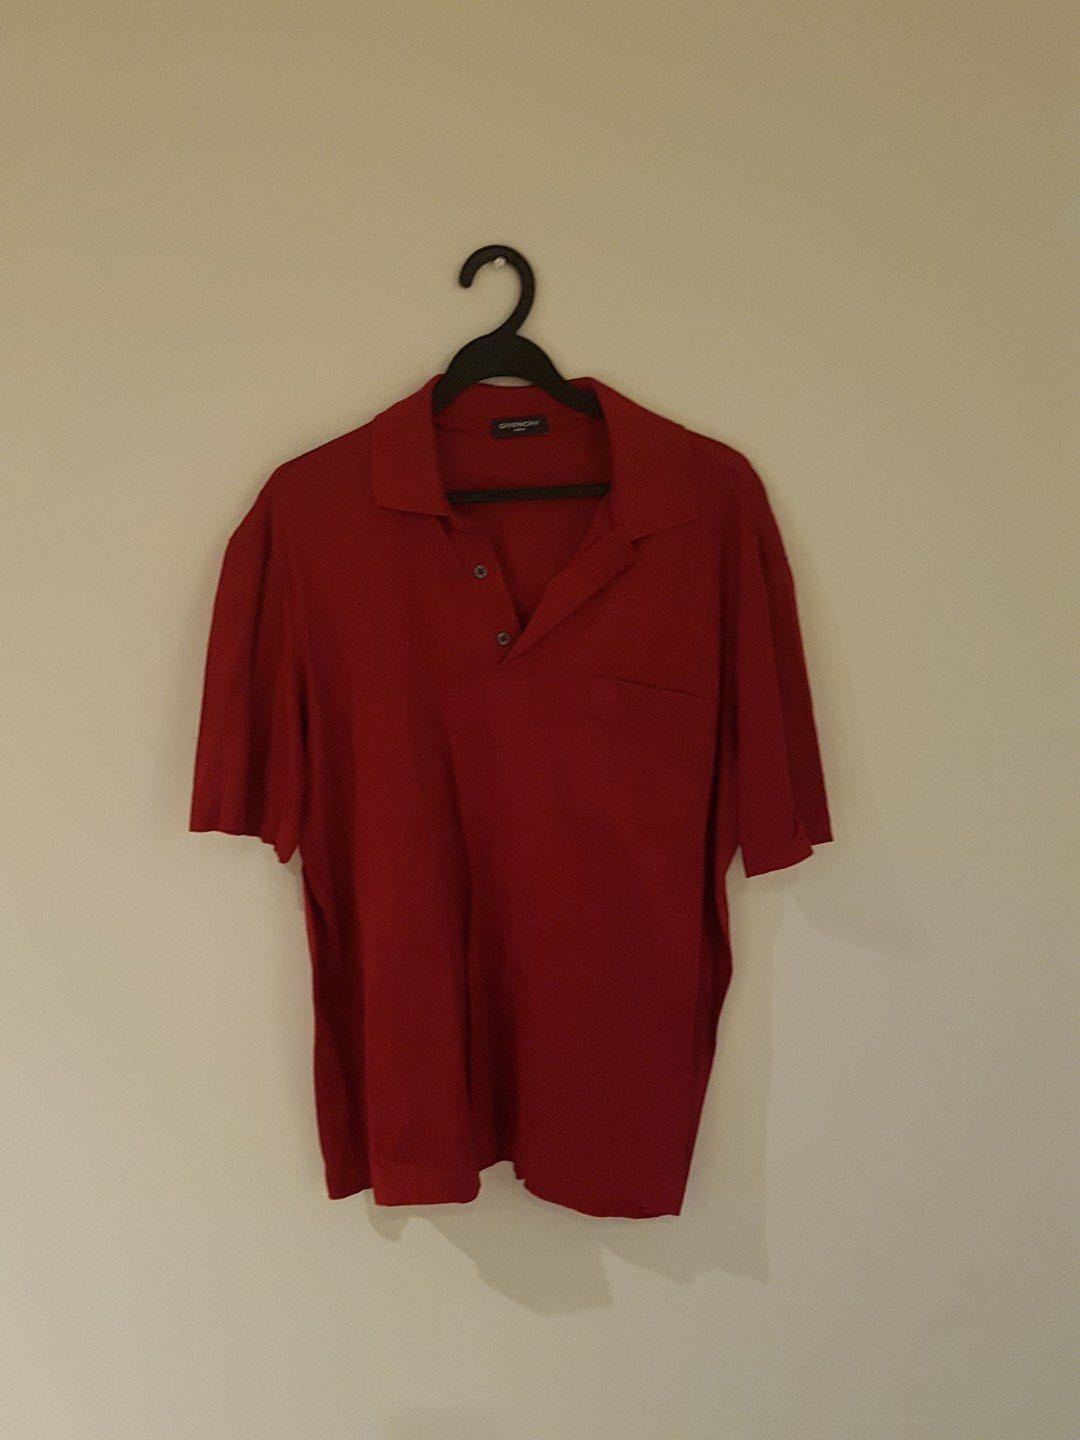 21a2c852 Vintage Givenchy Pattern Polo, Men's Fashion, Clothes, Tops on Carousell